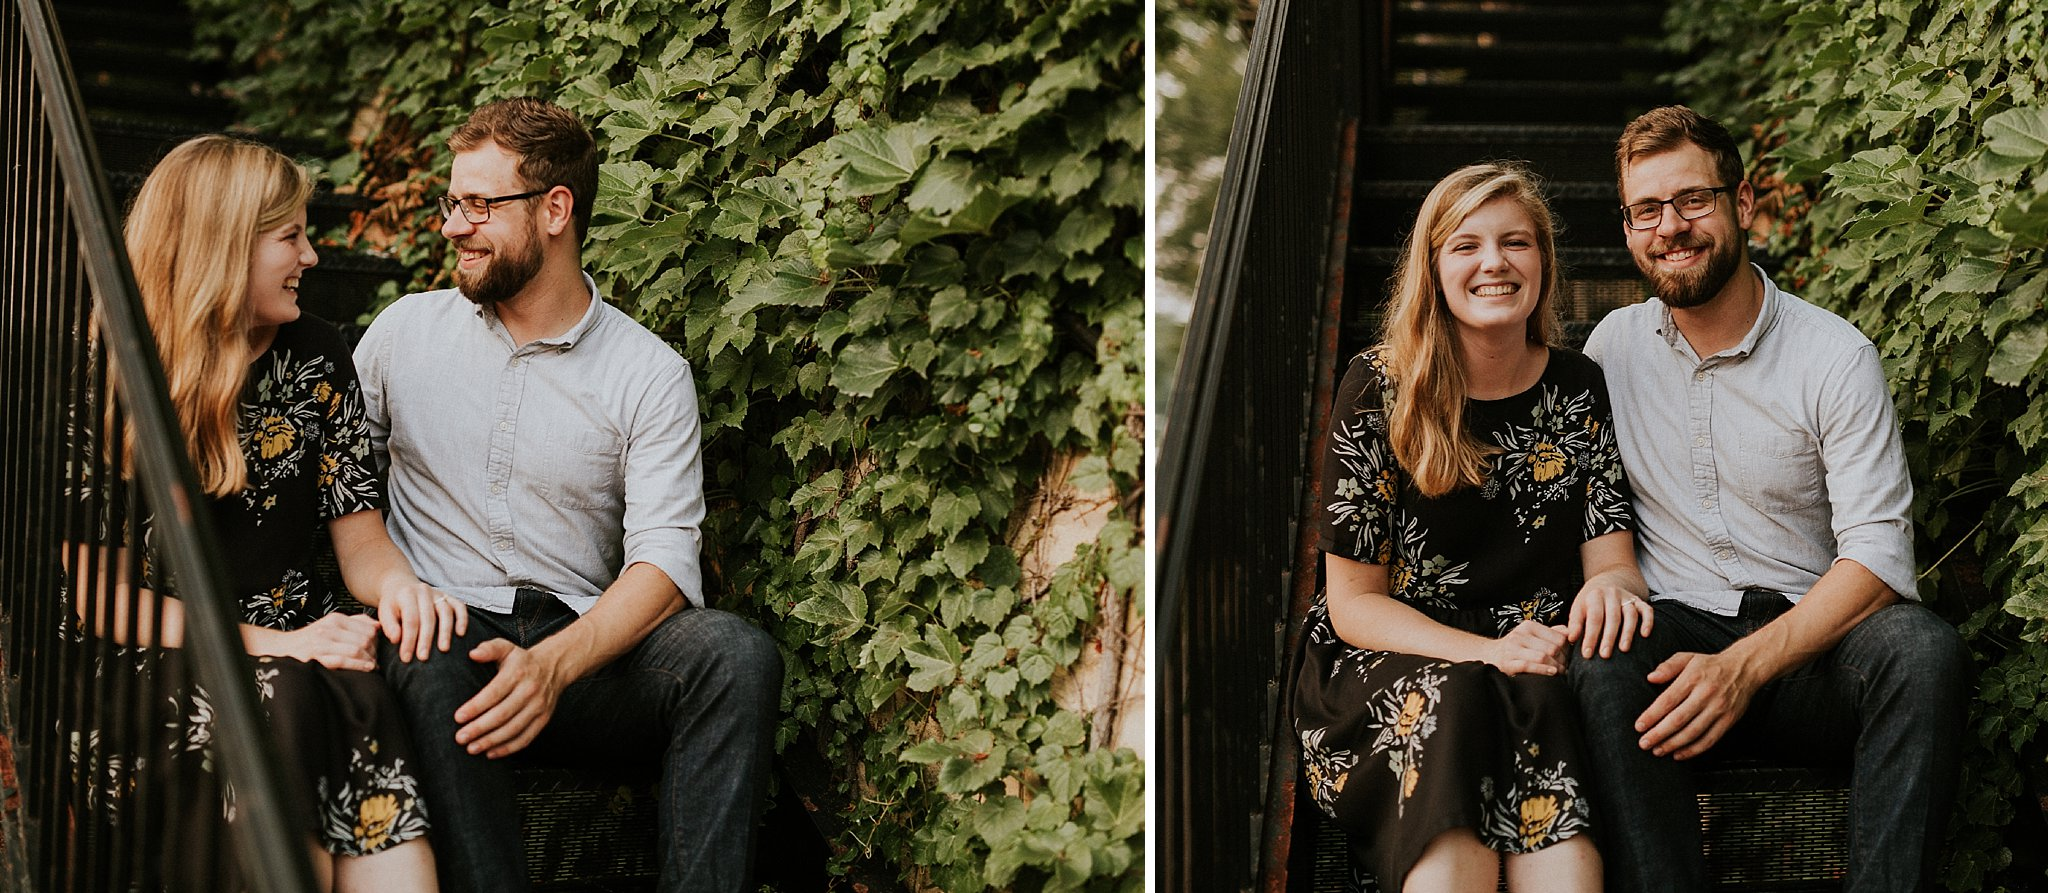 peter-katelyn_chicago-engagement-session_west-dundee-raceway-woods_0020.jpg